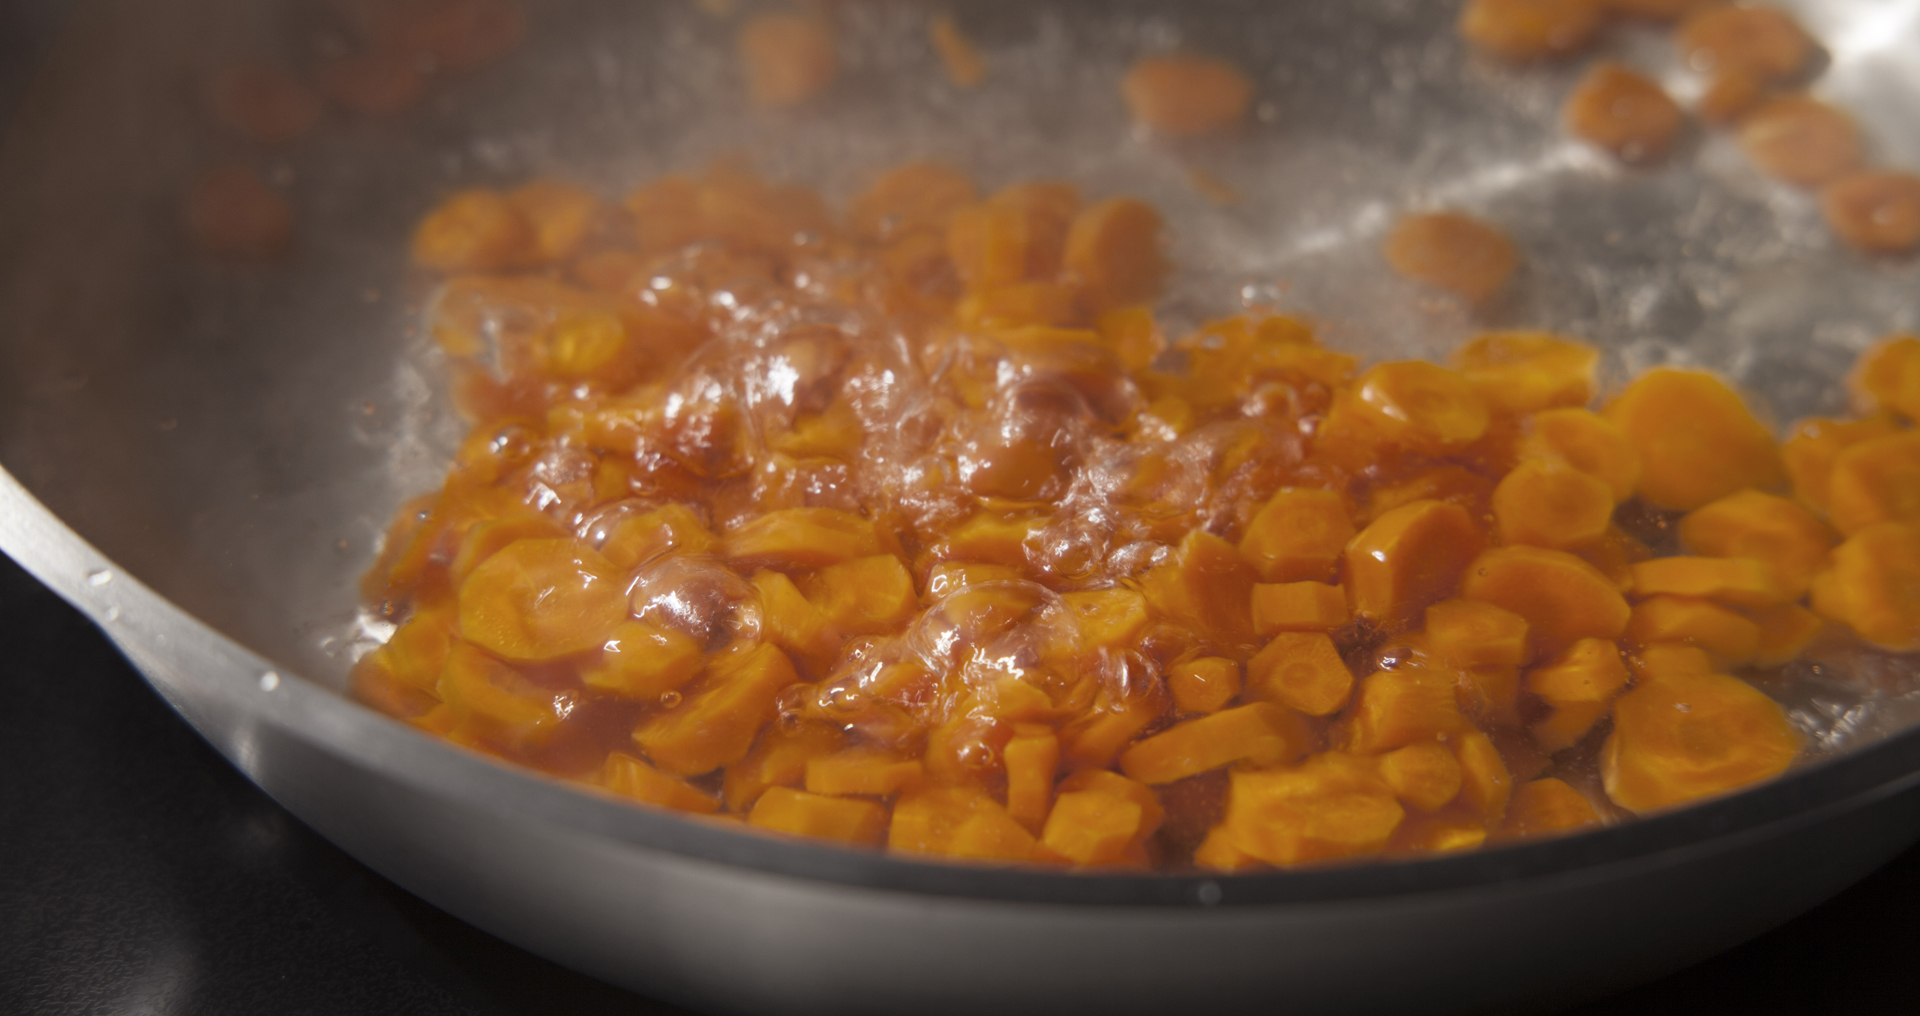 Boiling Carrots